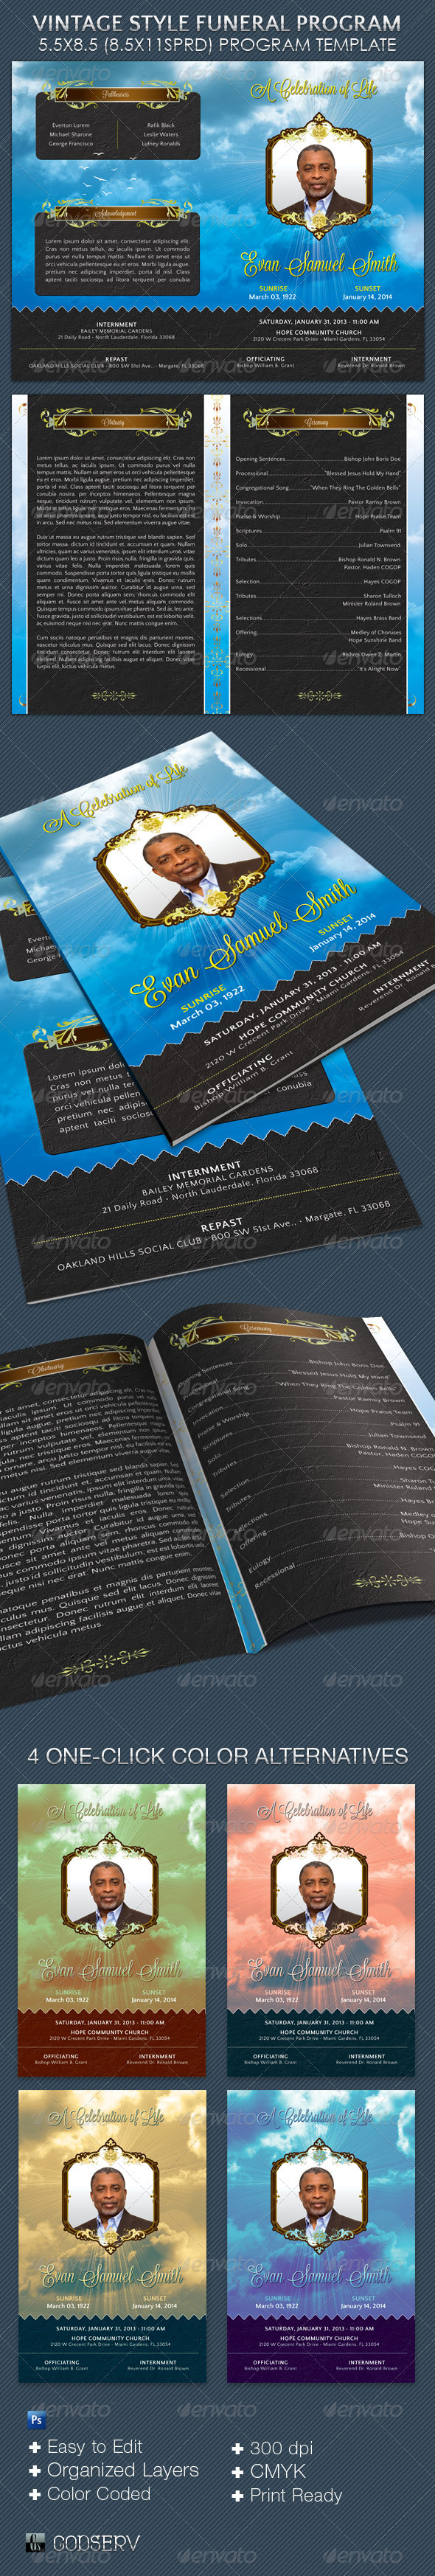 GraphicRiver Vintage Style Funeral Program